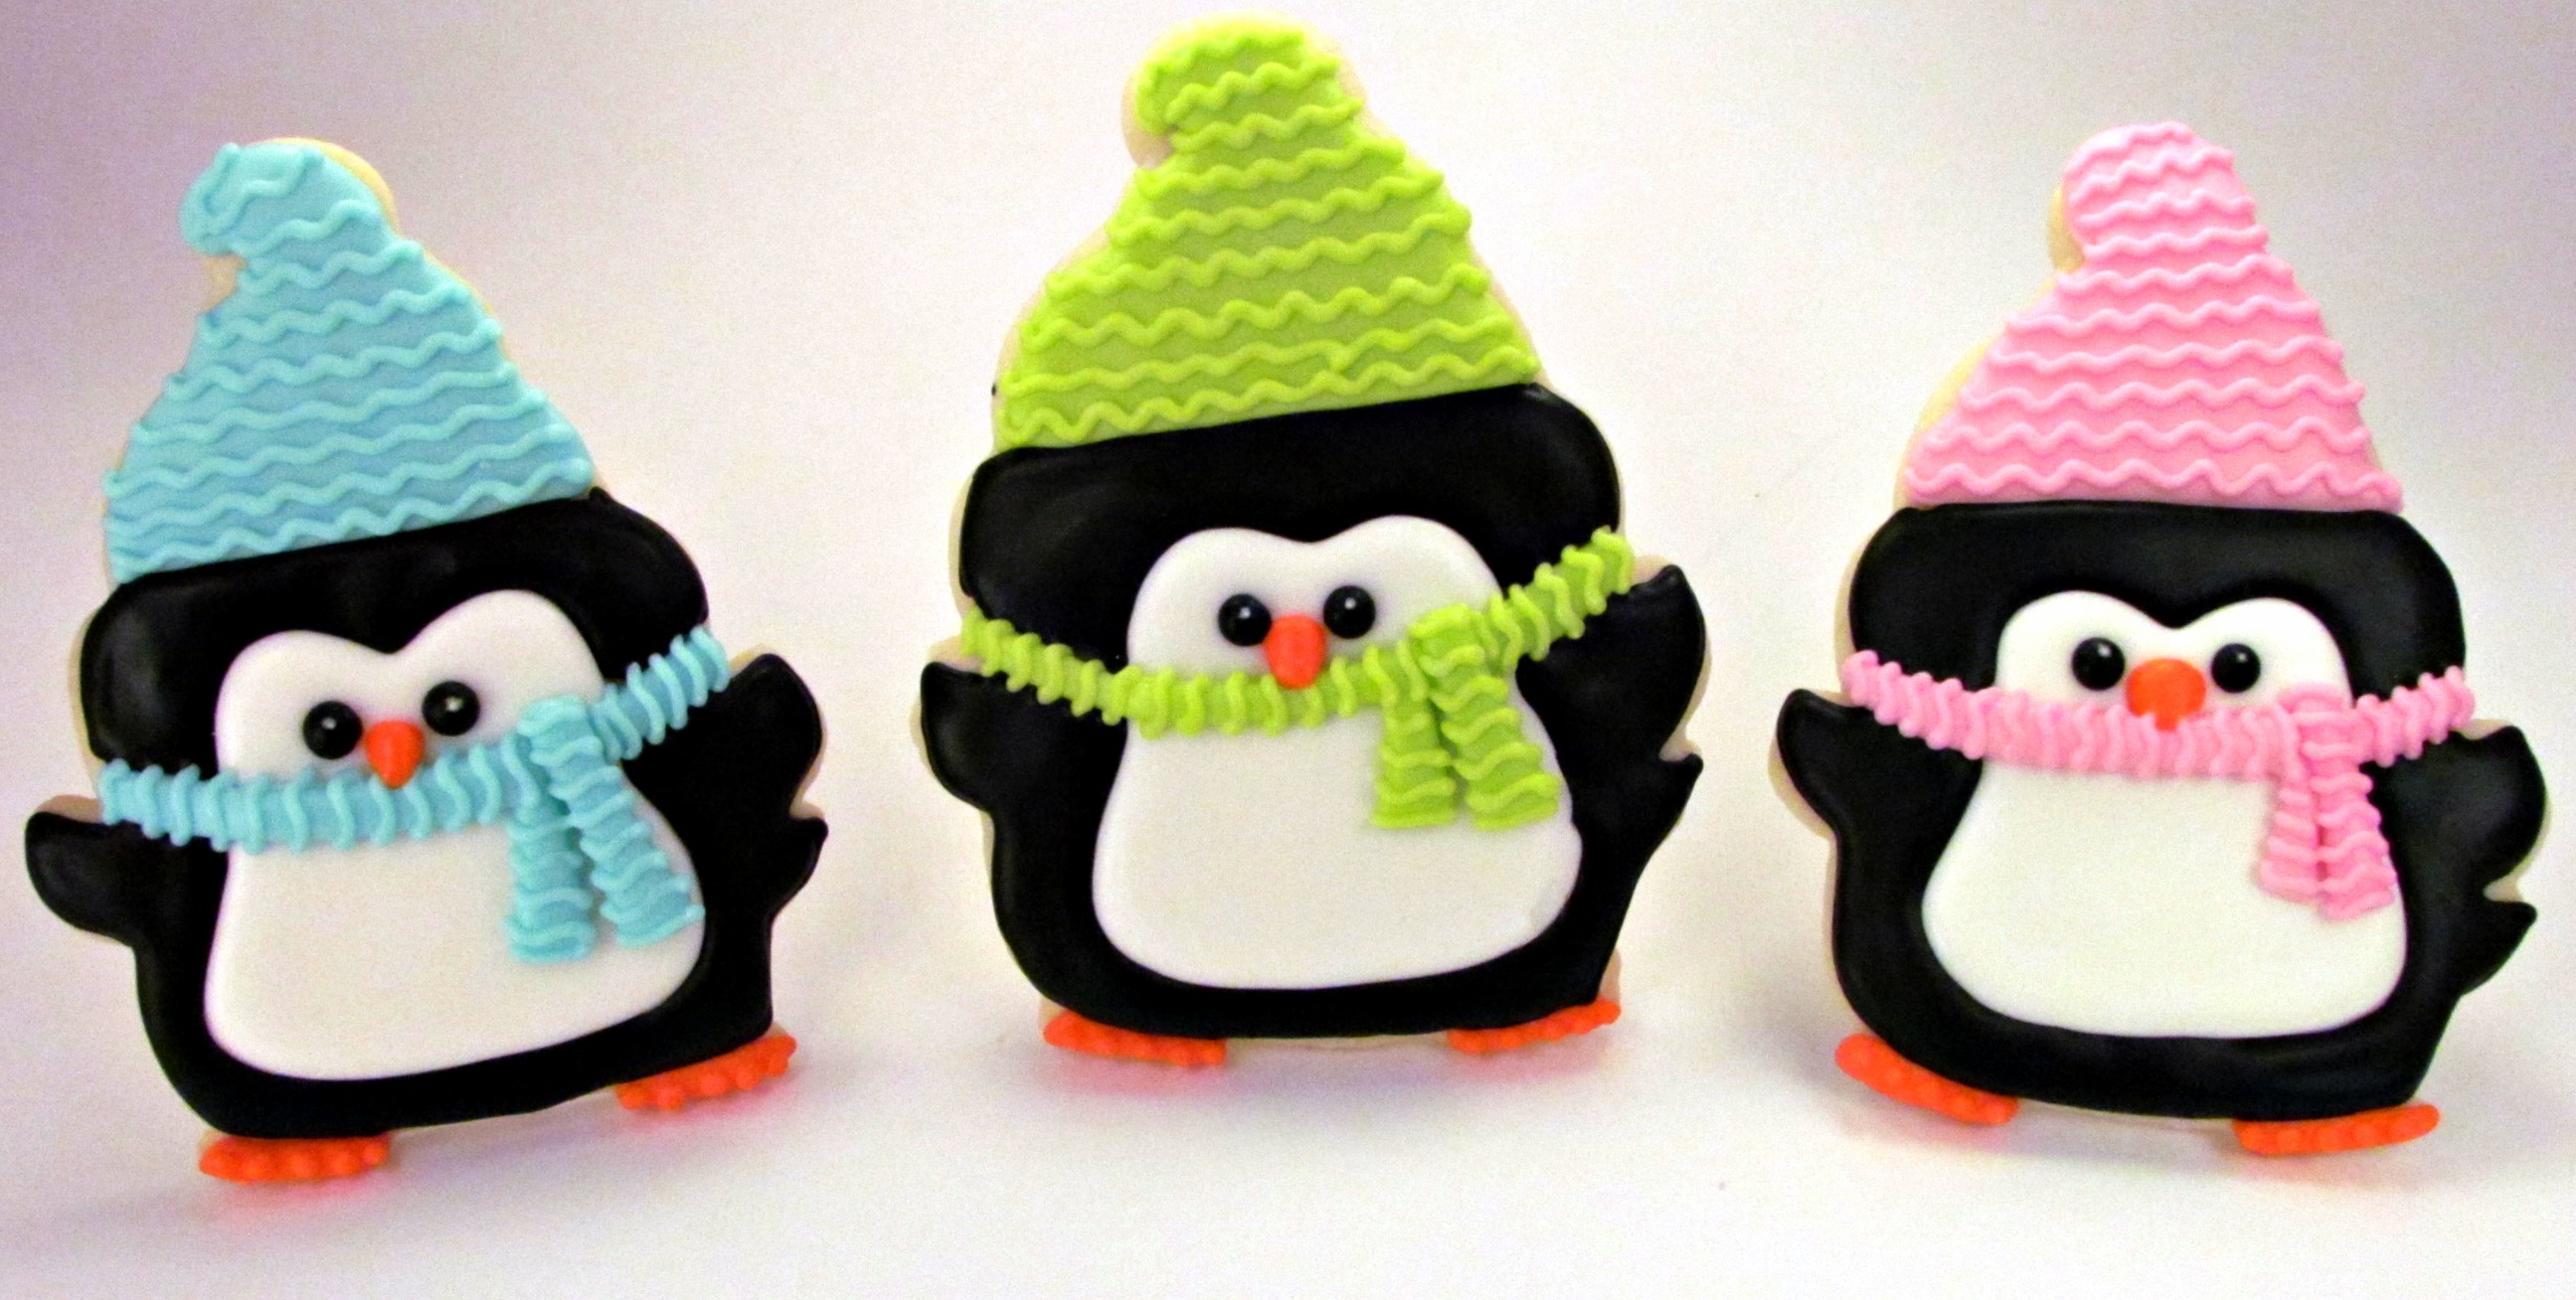 Penguin Cookies With Cute Little Hats The Bearfoot Baker